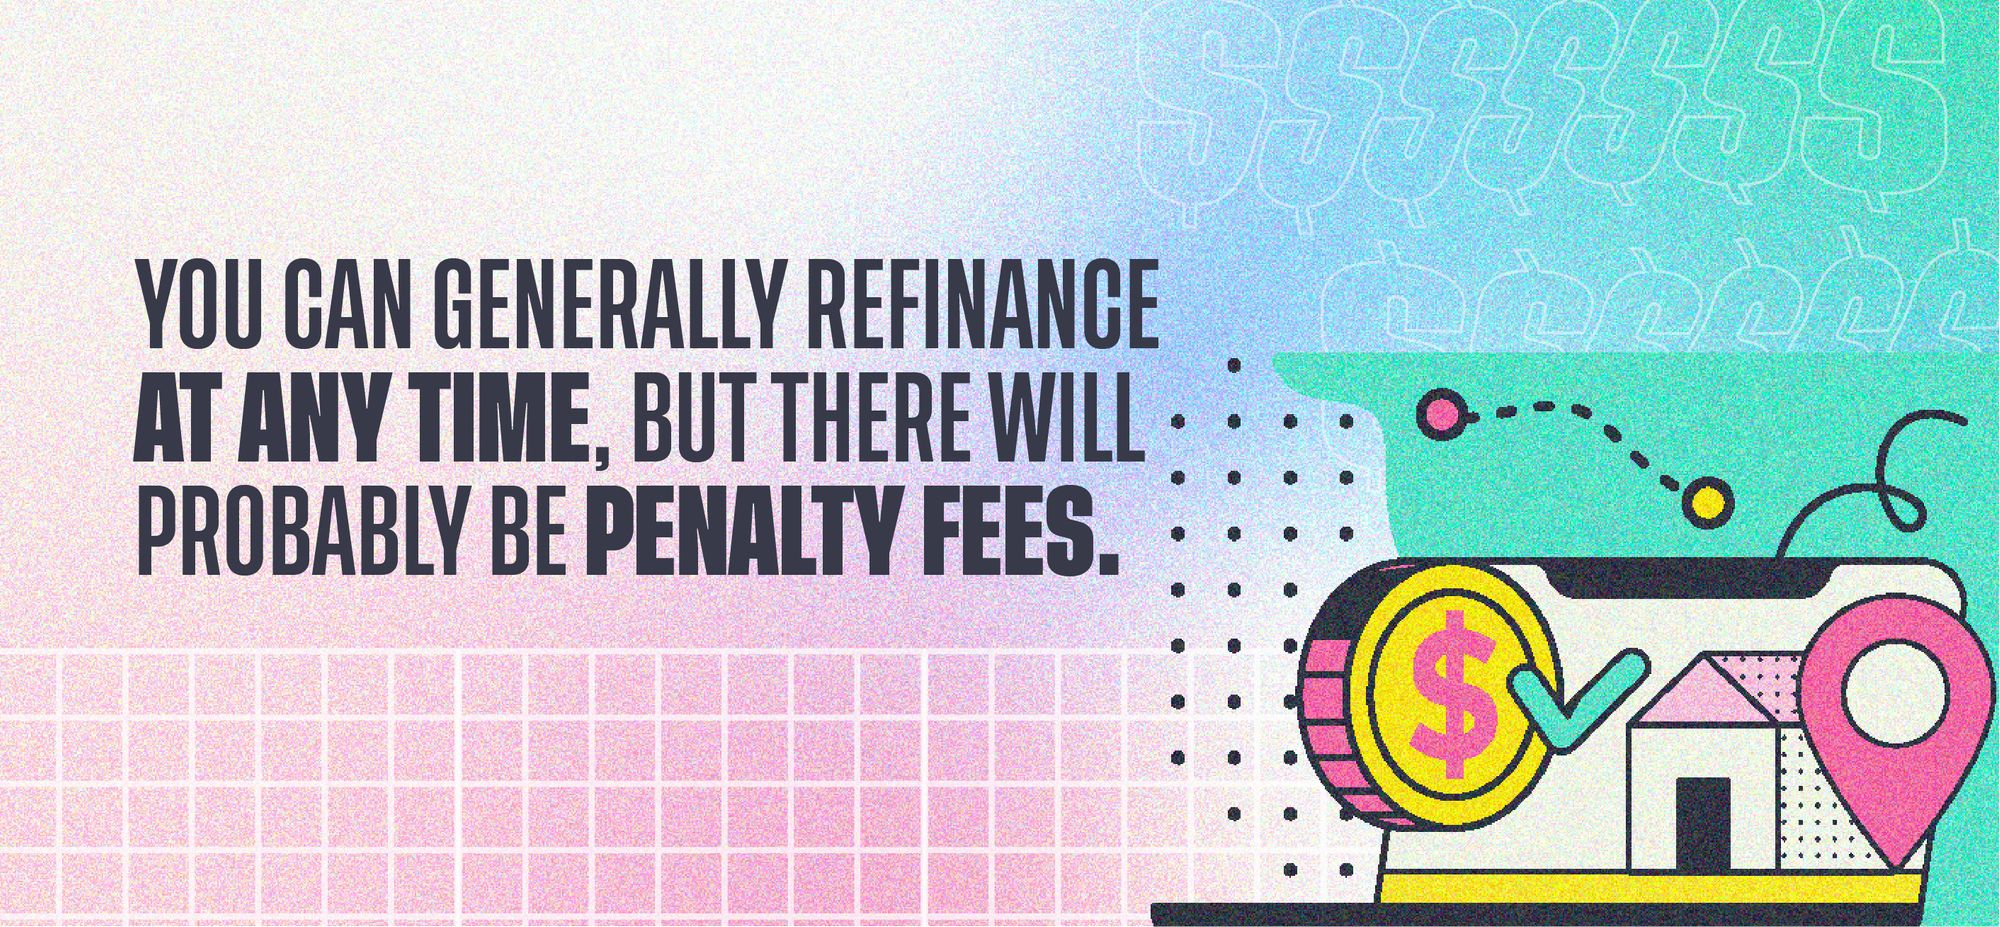 You can generally refinance at any time, but there will probably be penalty fees.